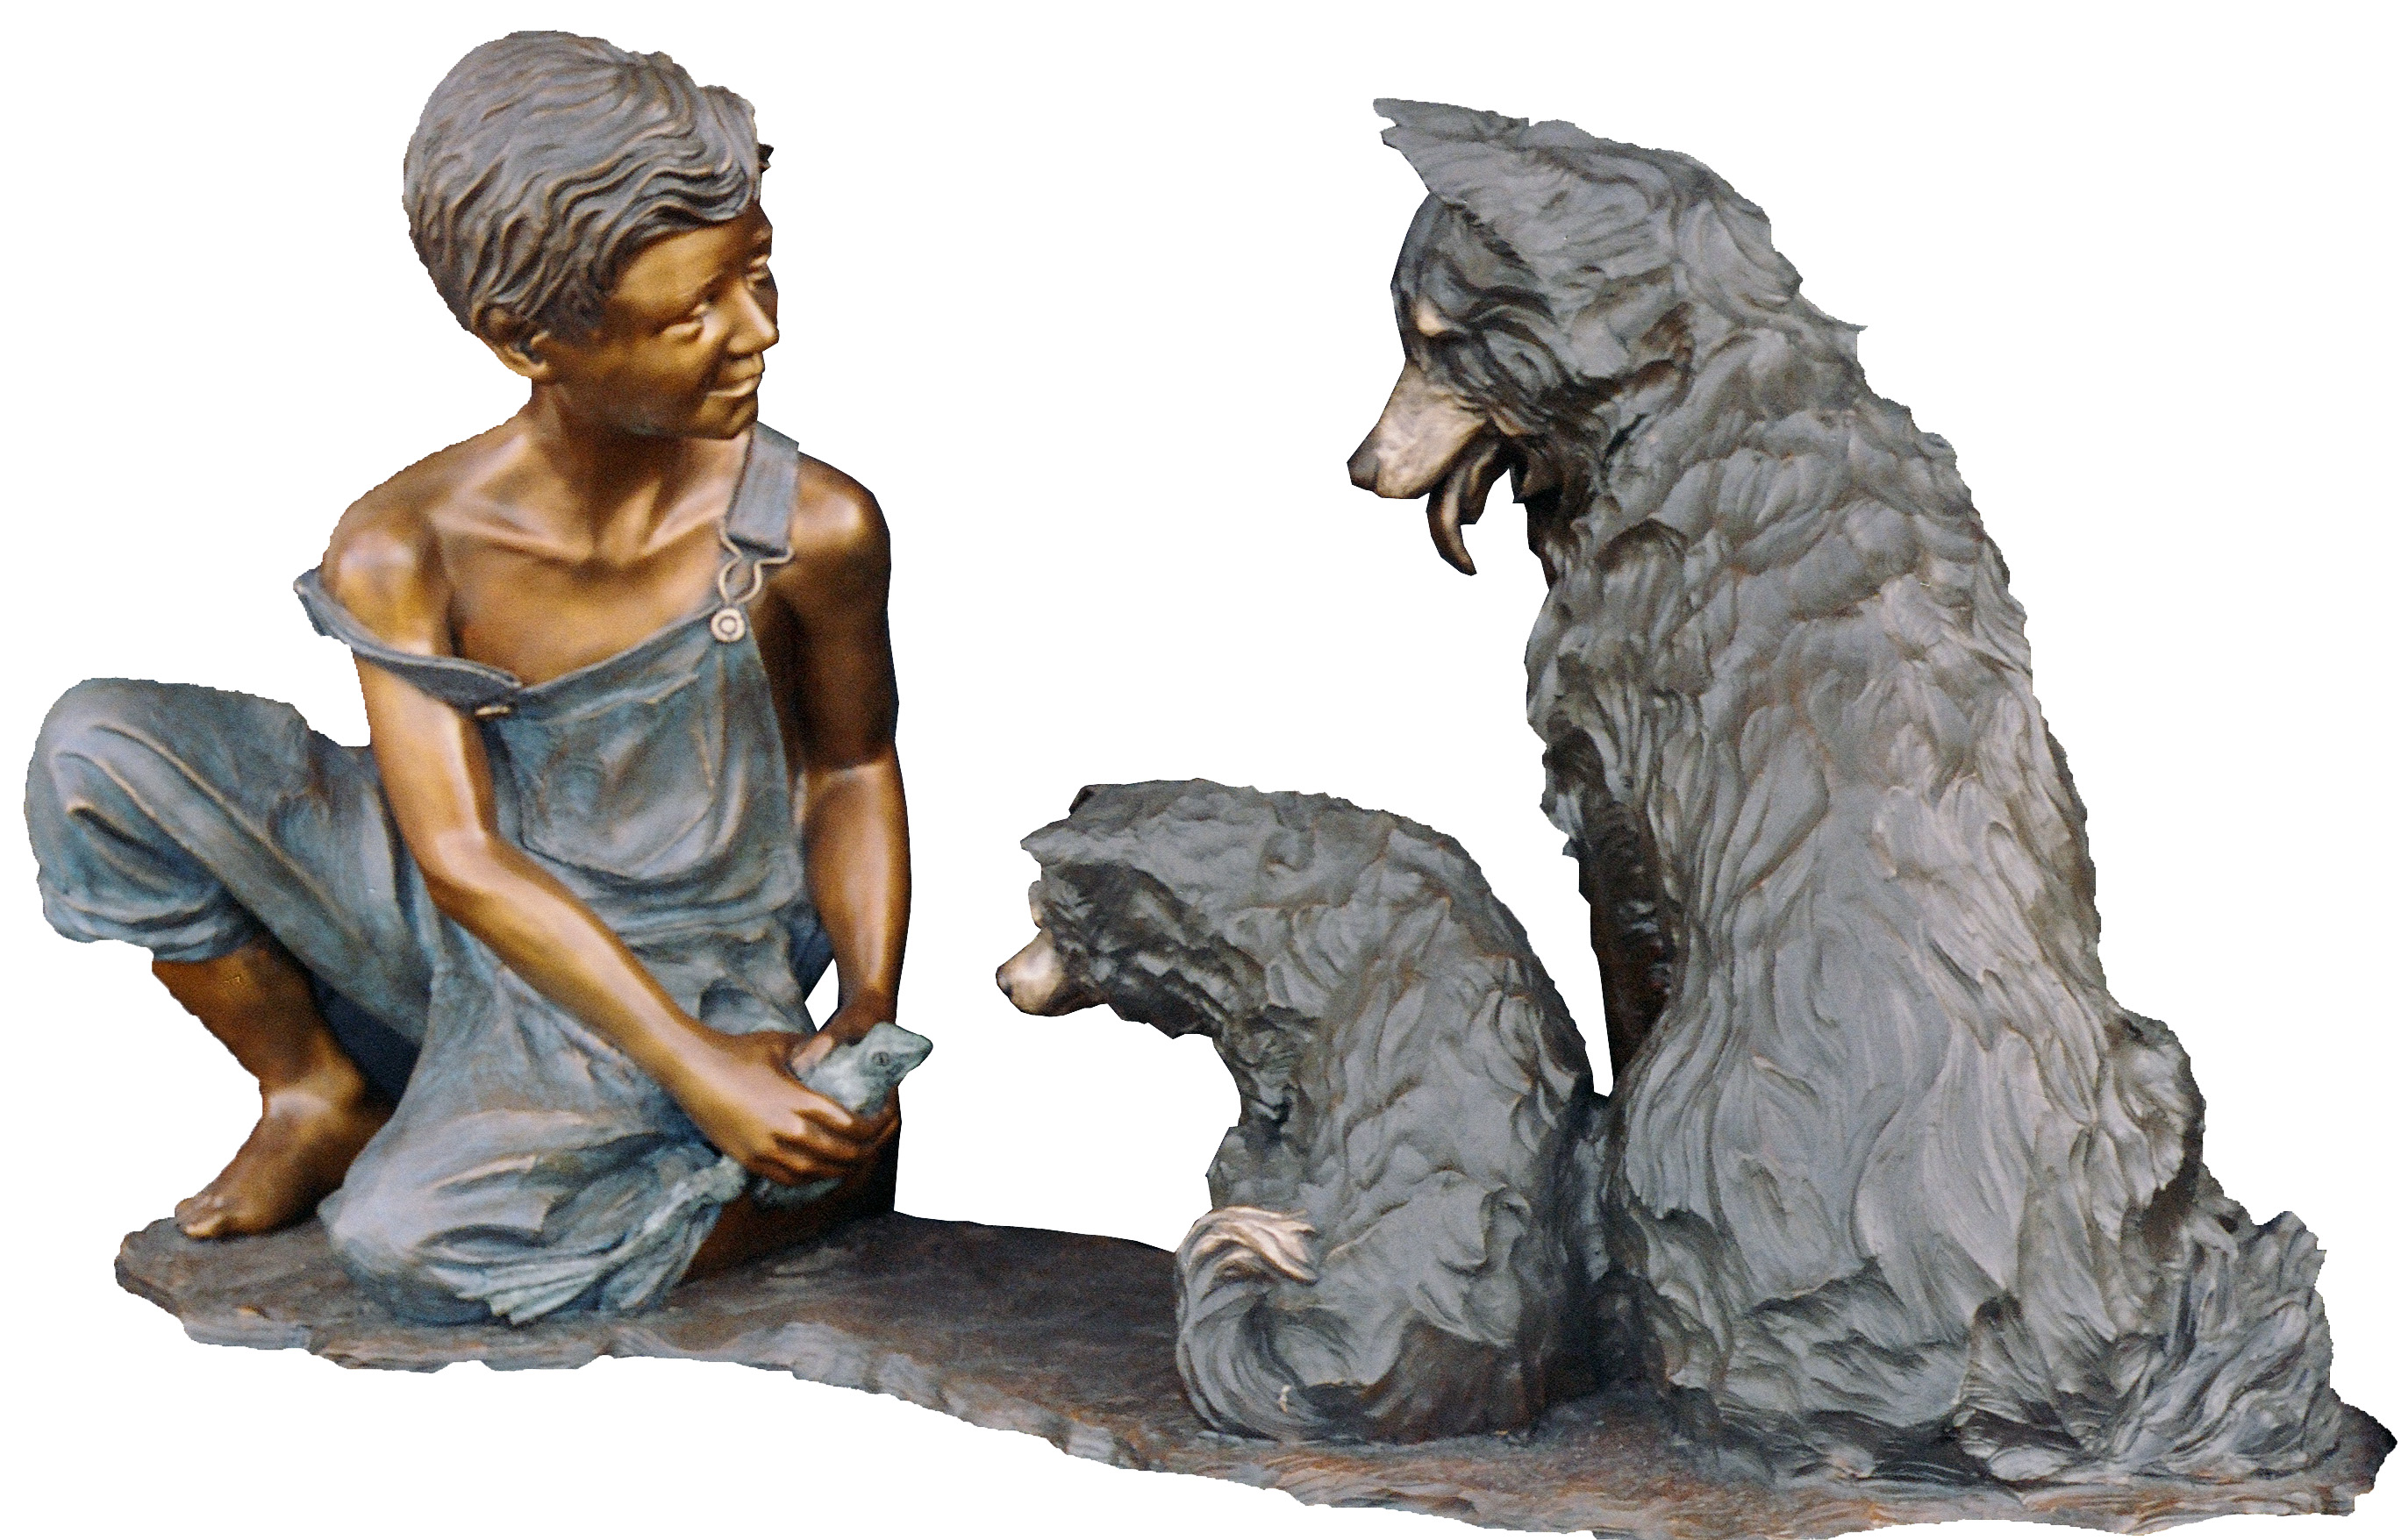 Pocketful of Trouble, bronze sculpture of a boy and his dogs by Colorado artist Greg Todd